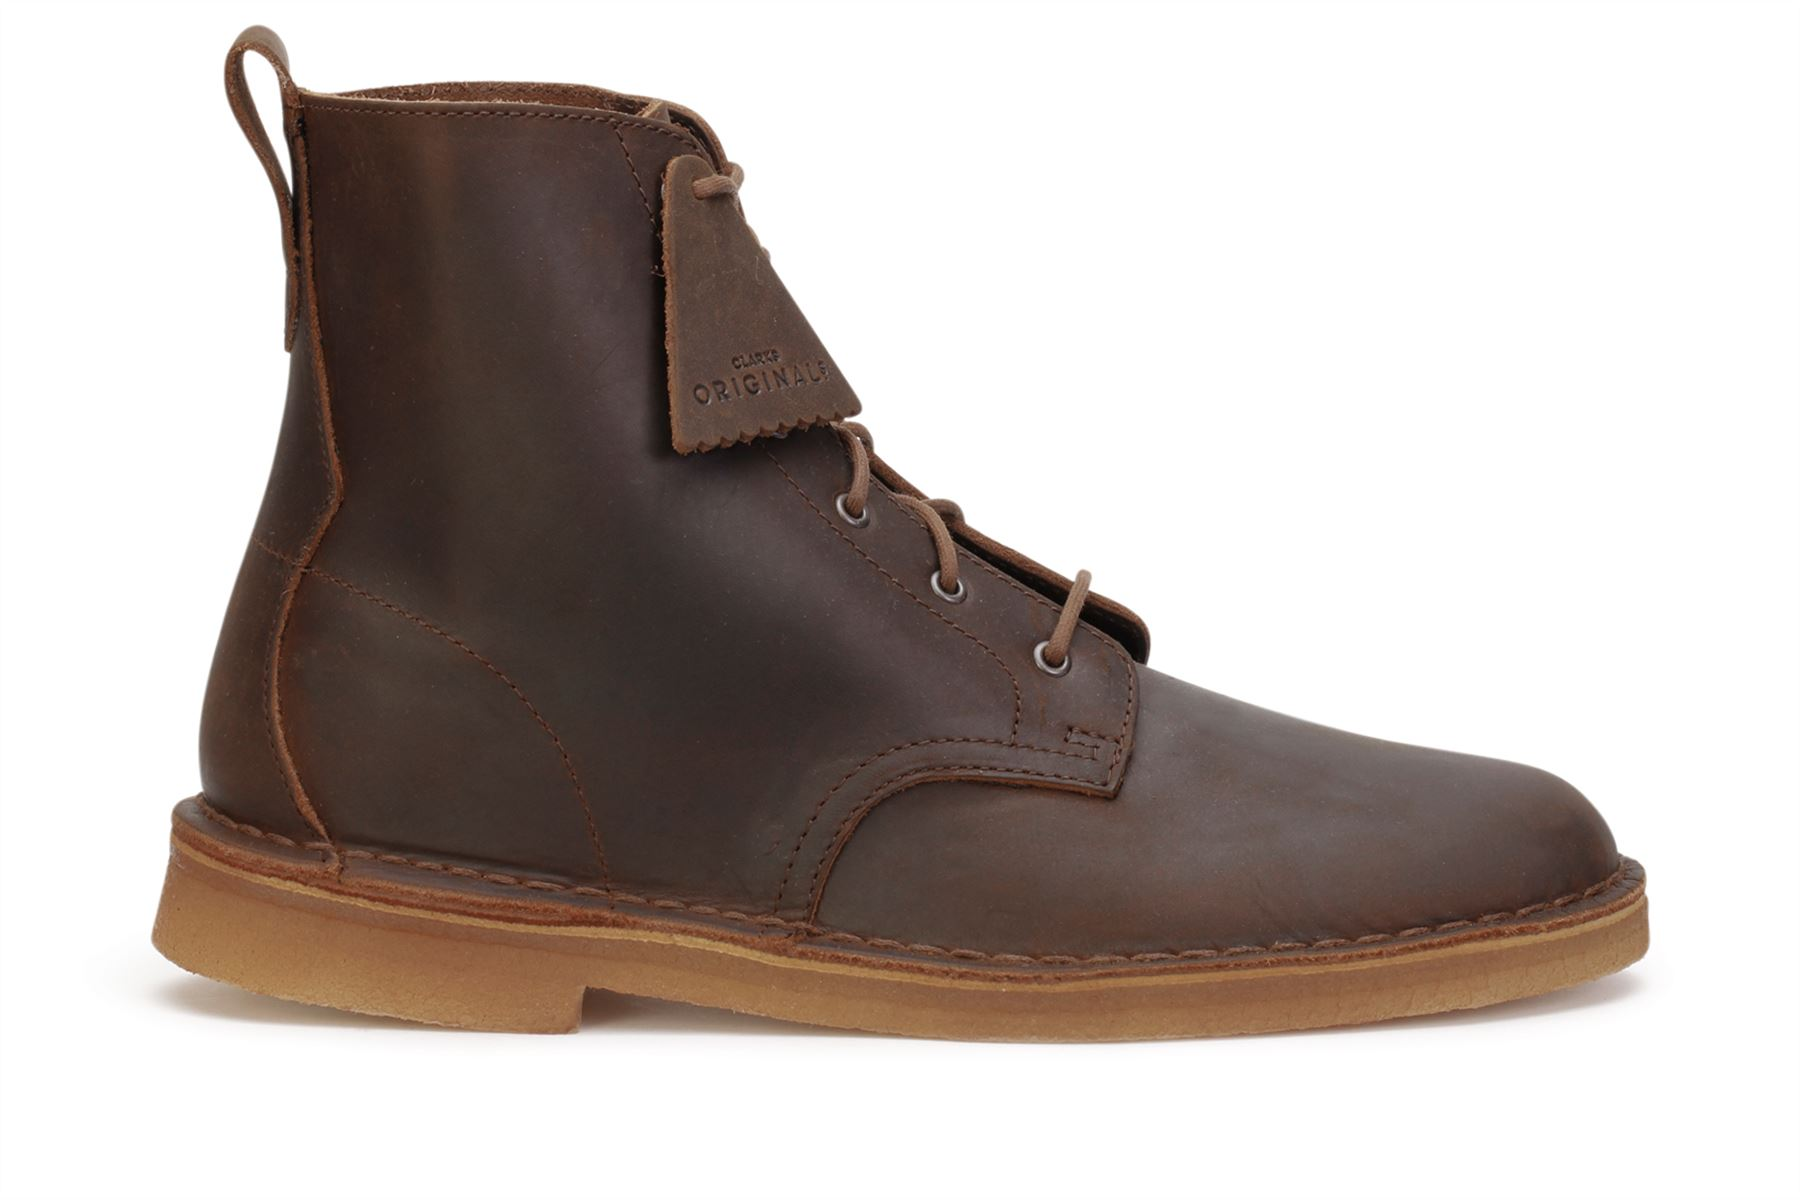 Details about Clarks Originals Men's Desert Mali Boots Beeswax Leather 26137705